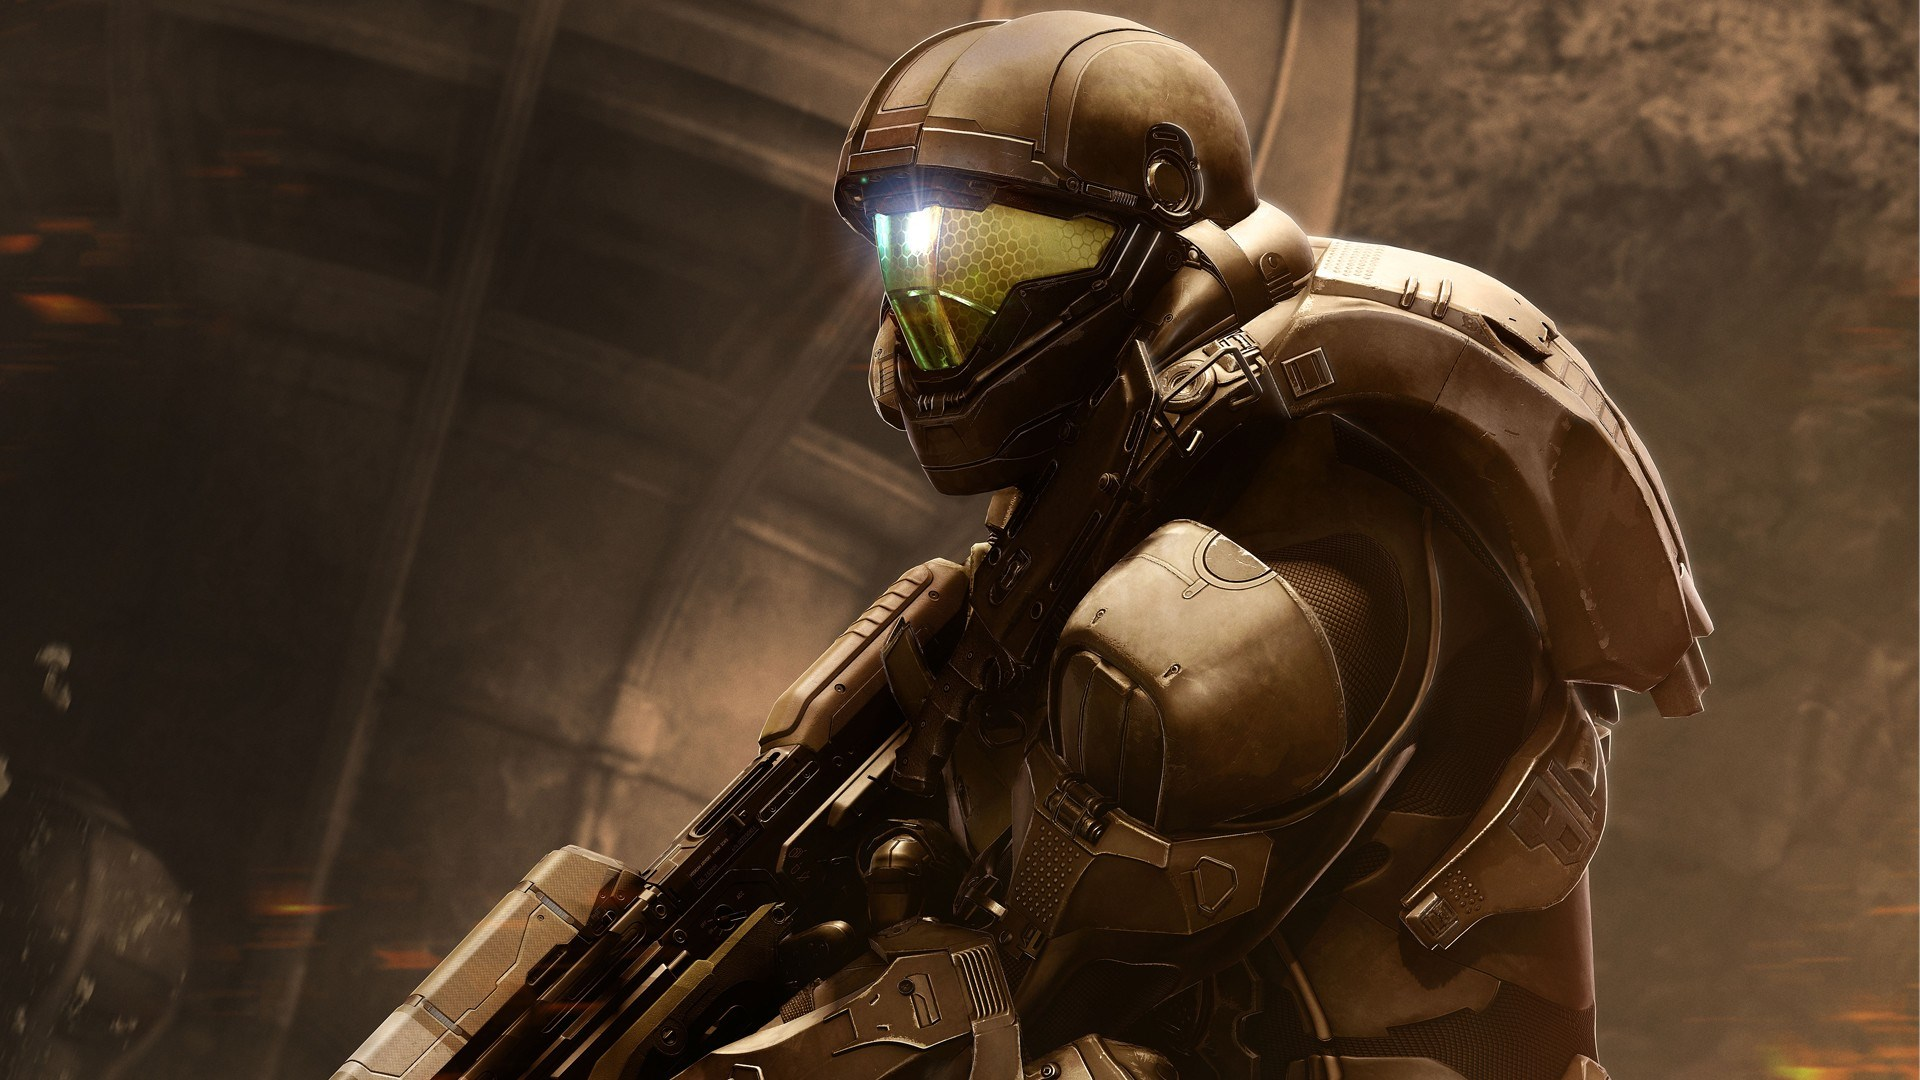 Corliss-Ross-windows-Halo-Guardians-1920x1080-px-wallpaper-wp3804081